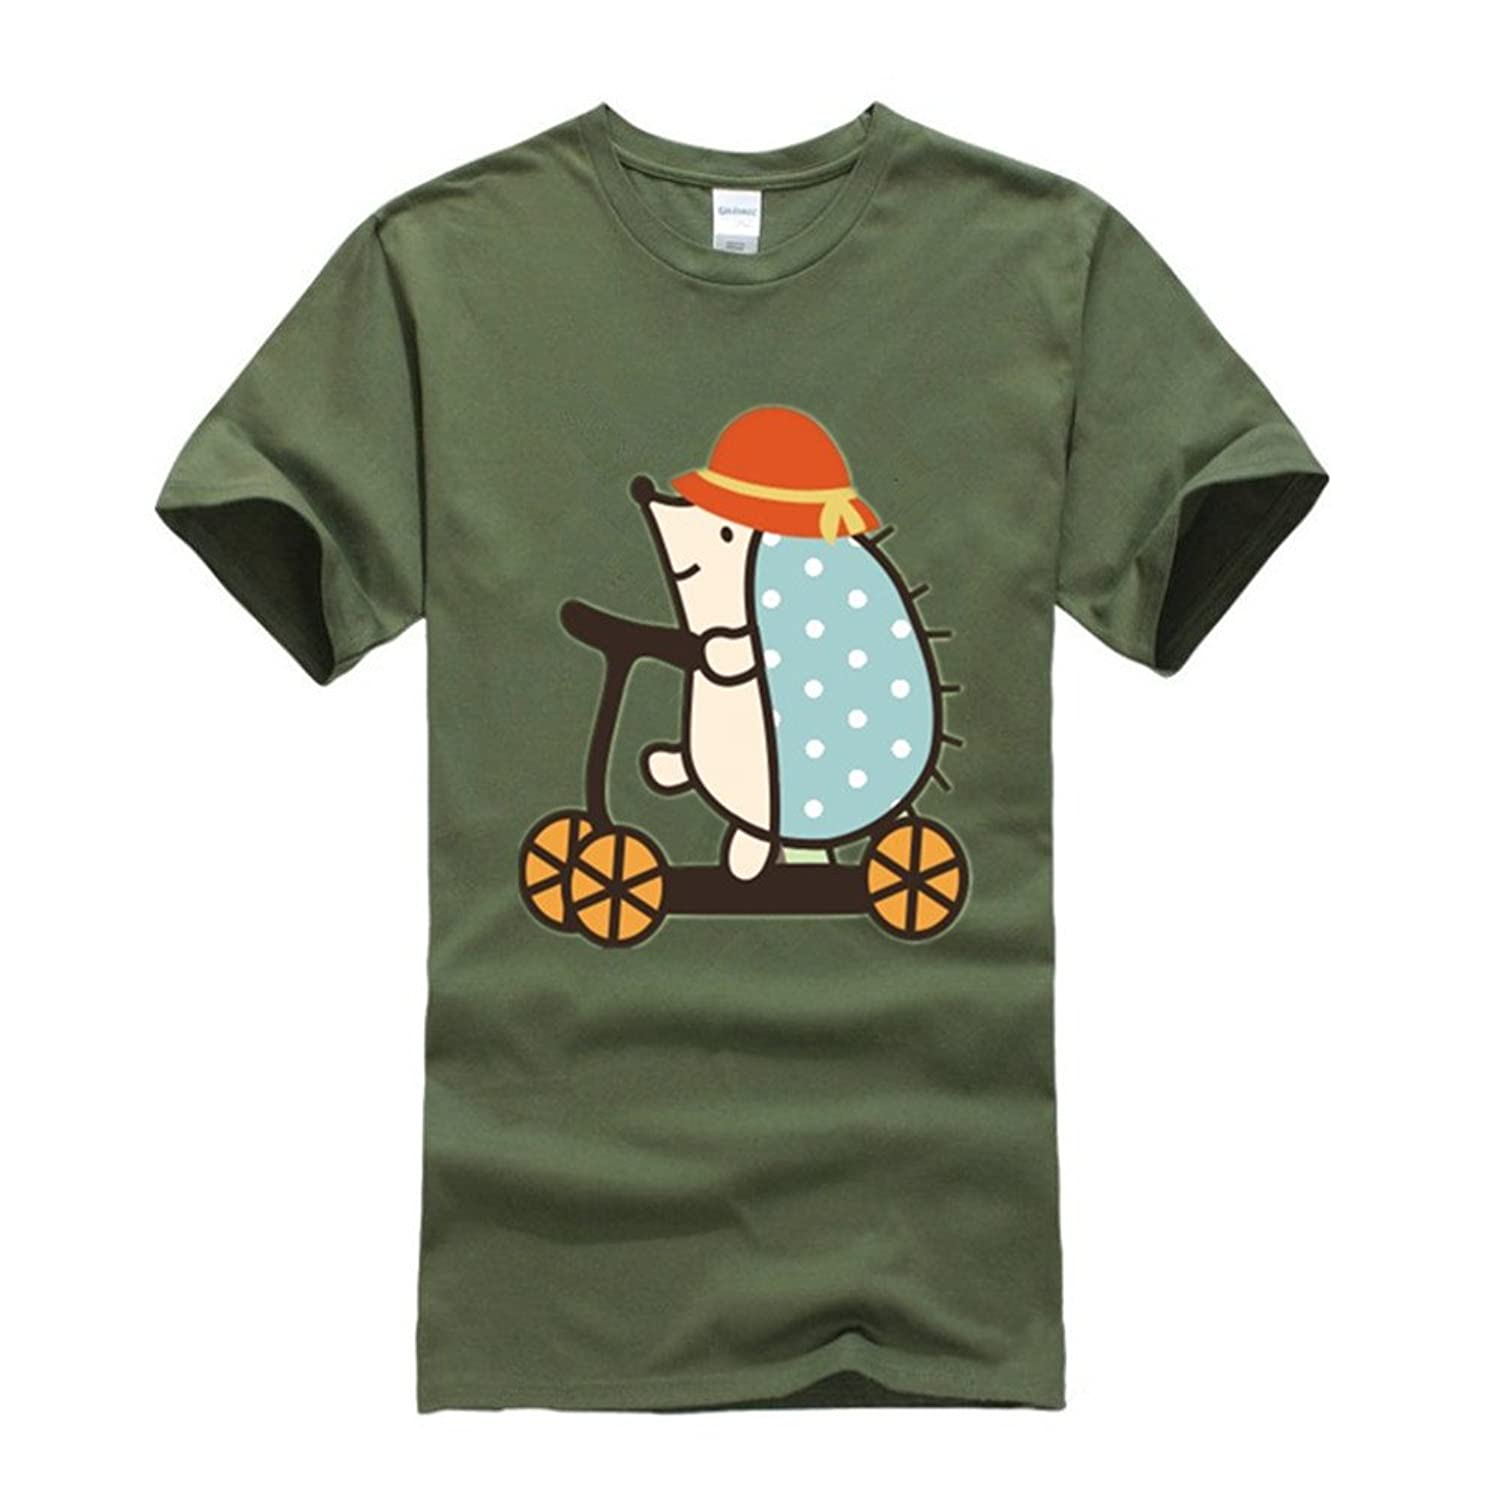 The Hedgehog Cycling Tv Show Series Lawn Green T-shirts